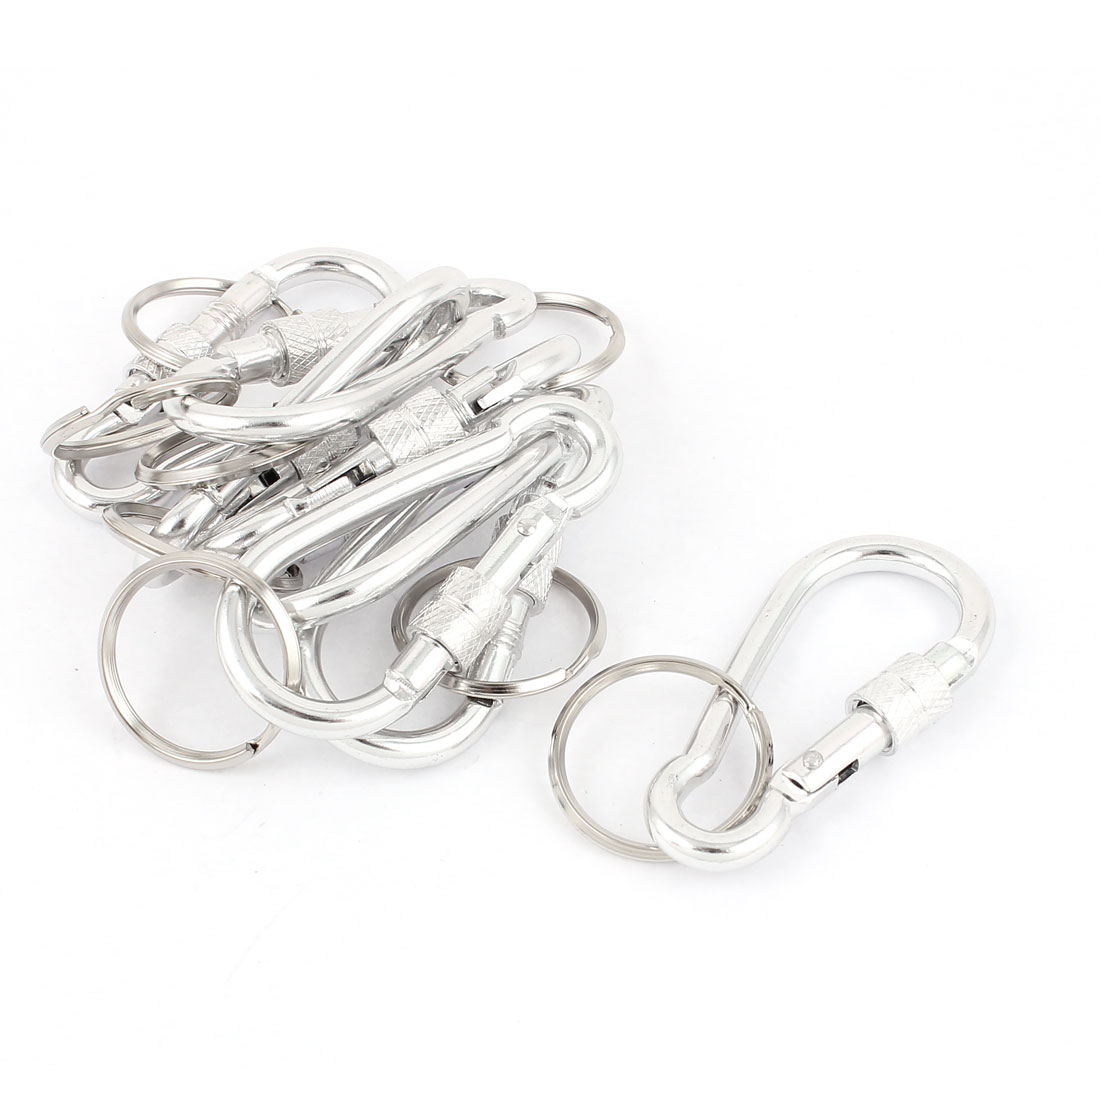 Camping Metal Bottle Gourd Shaped Screw Locking Carabiner Clip Snap Hook Split Ring Key Chain 8pcs Silver Tone